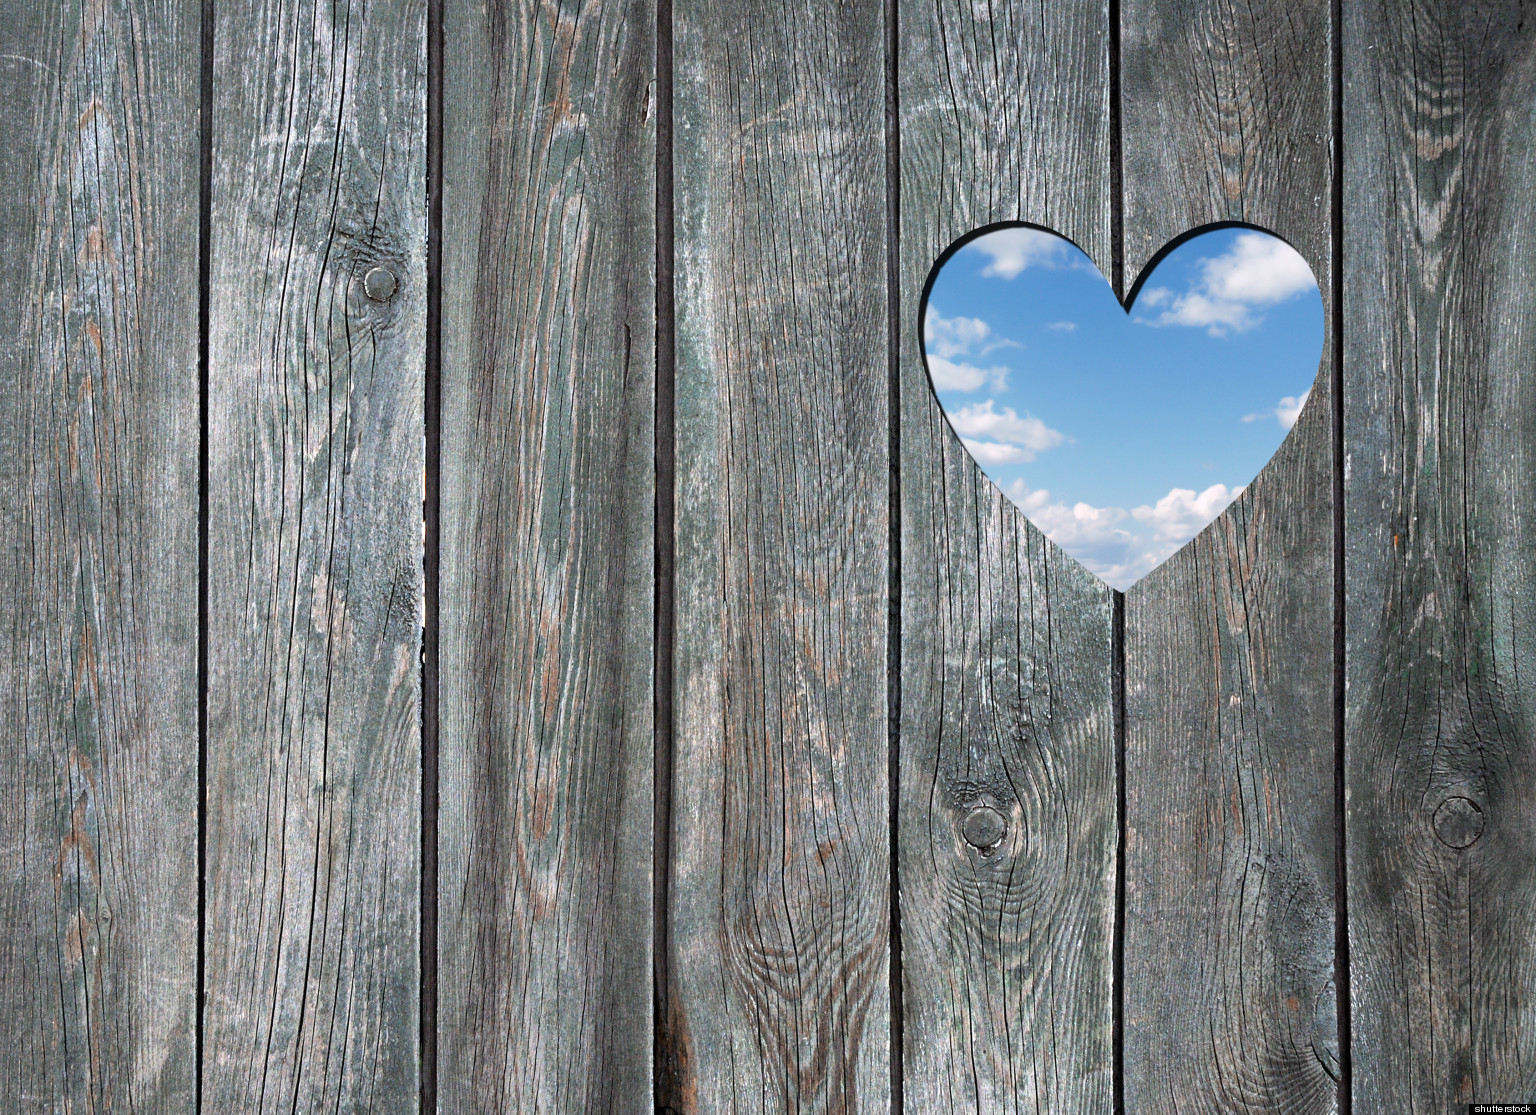 Looking for Love in All the Wrong Places | HuffPost